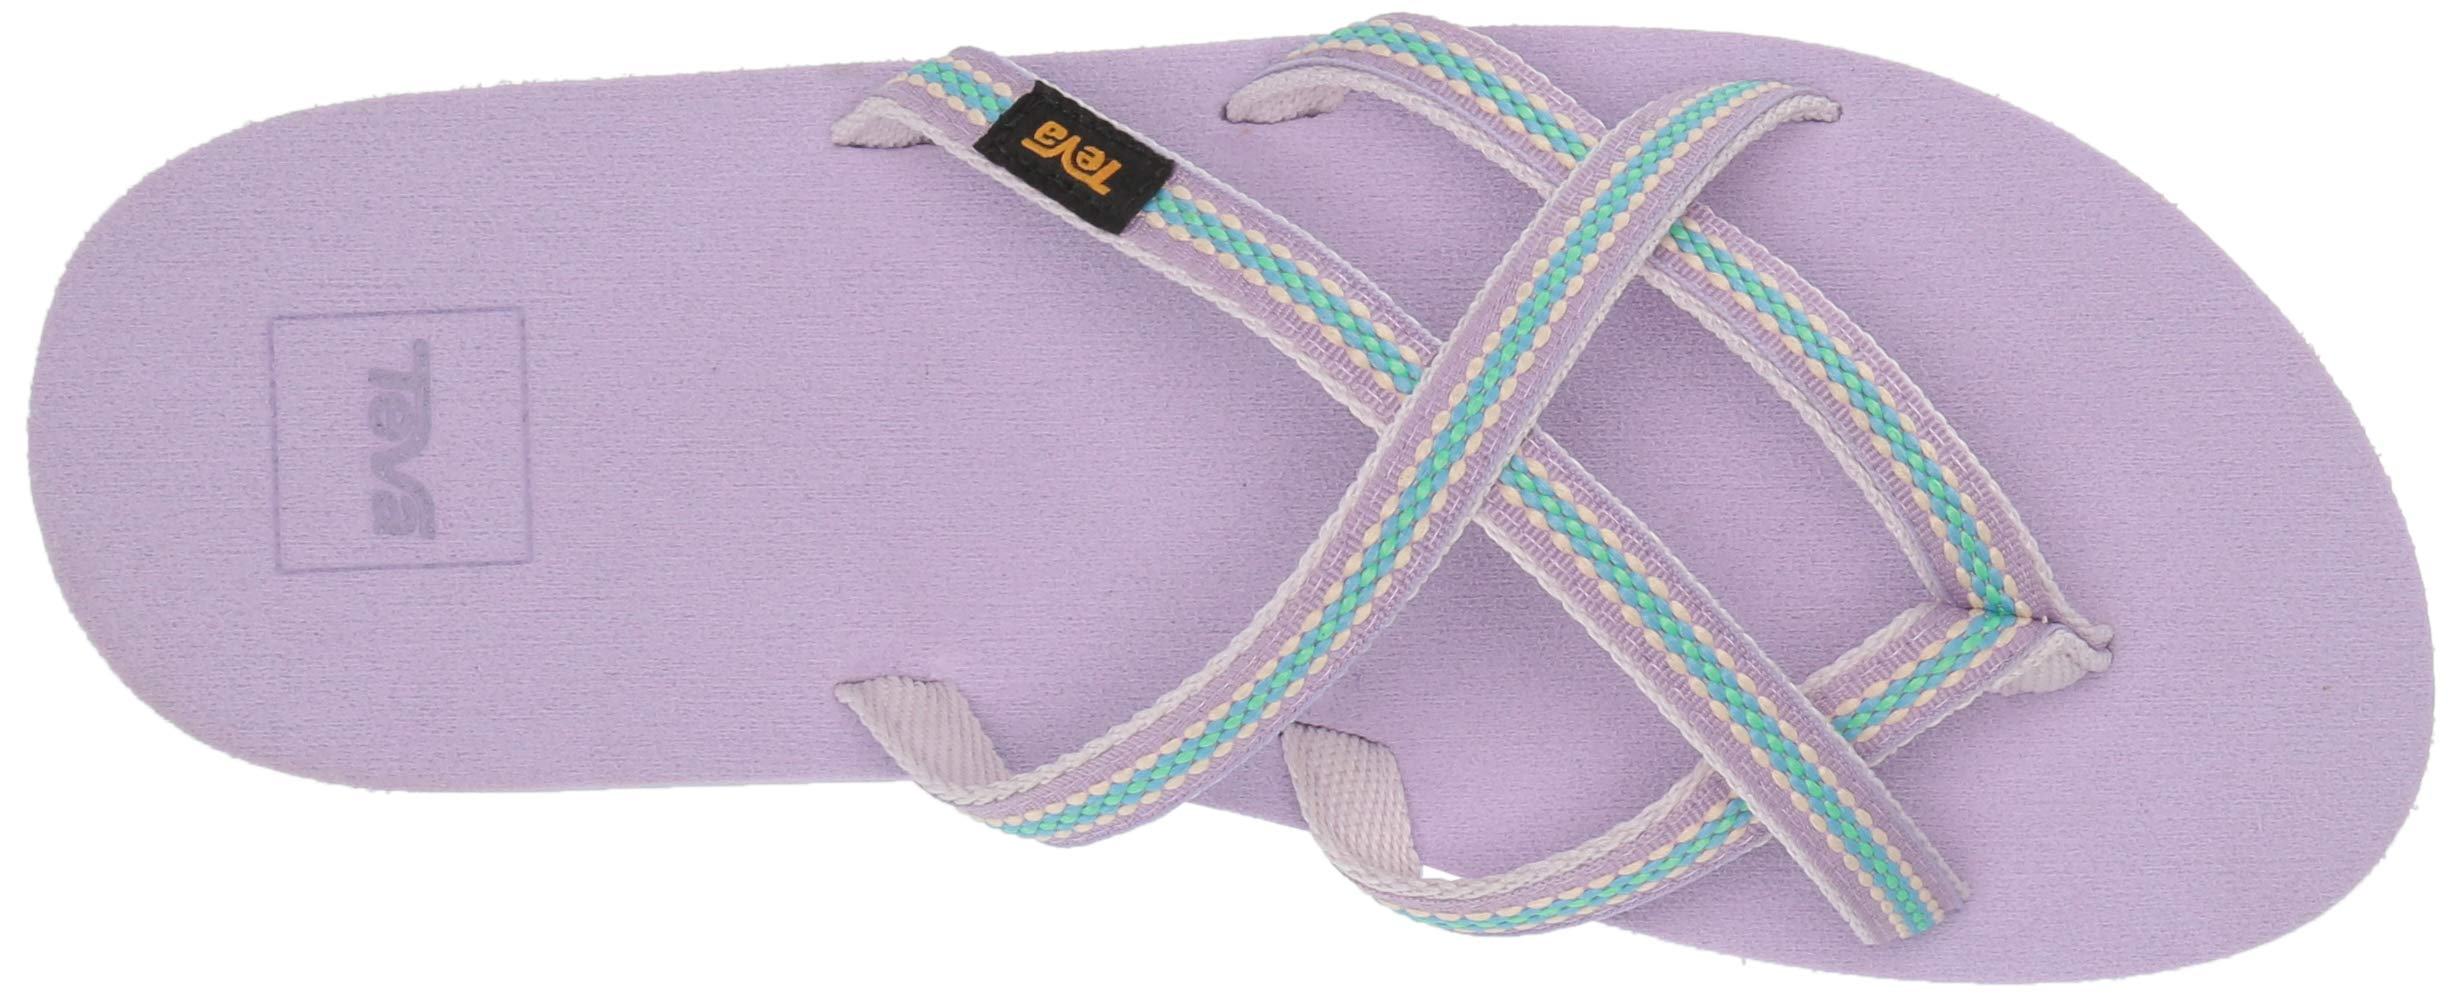 Teva Girls' Y Olowahu Sport Sandal, Lindi Orchid Bloom, 7 Medium US Big Kid by Teva (Image #9)